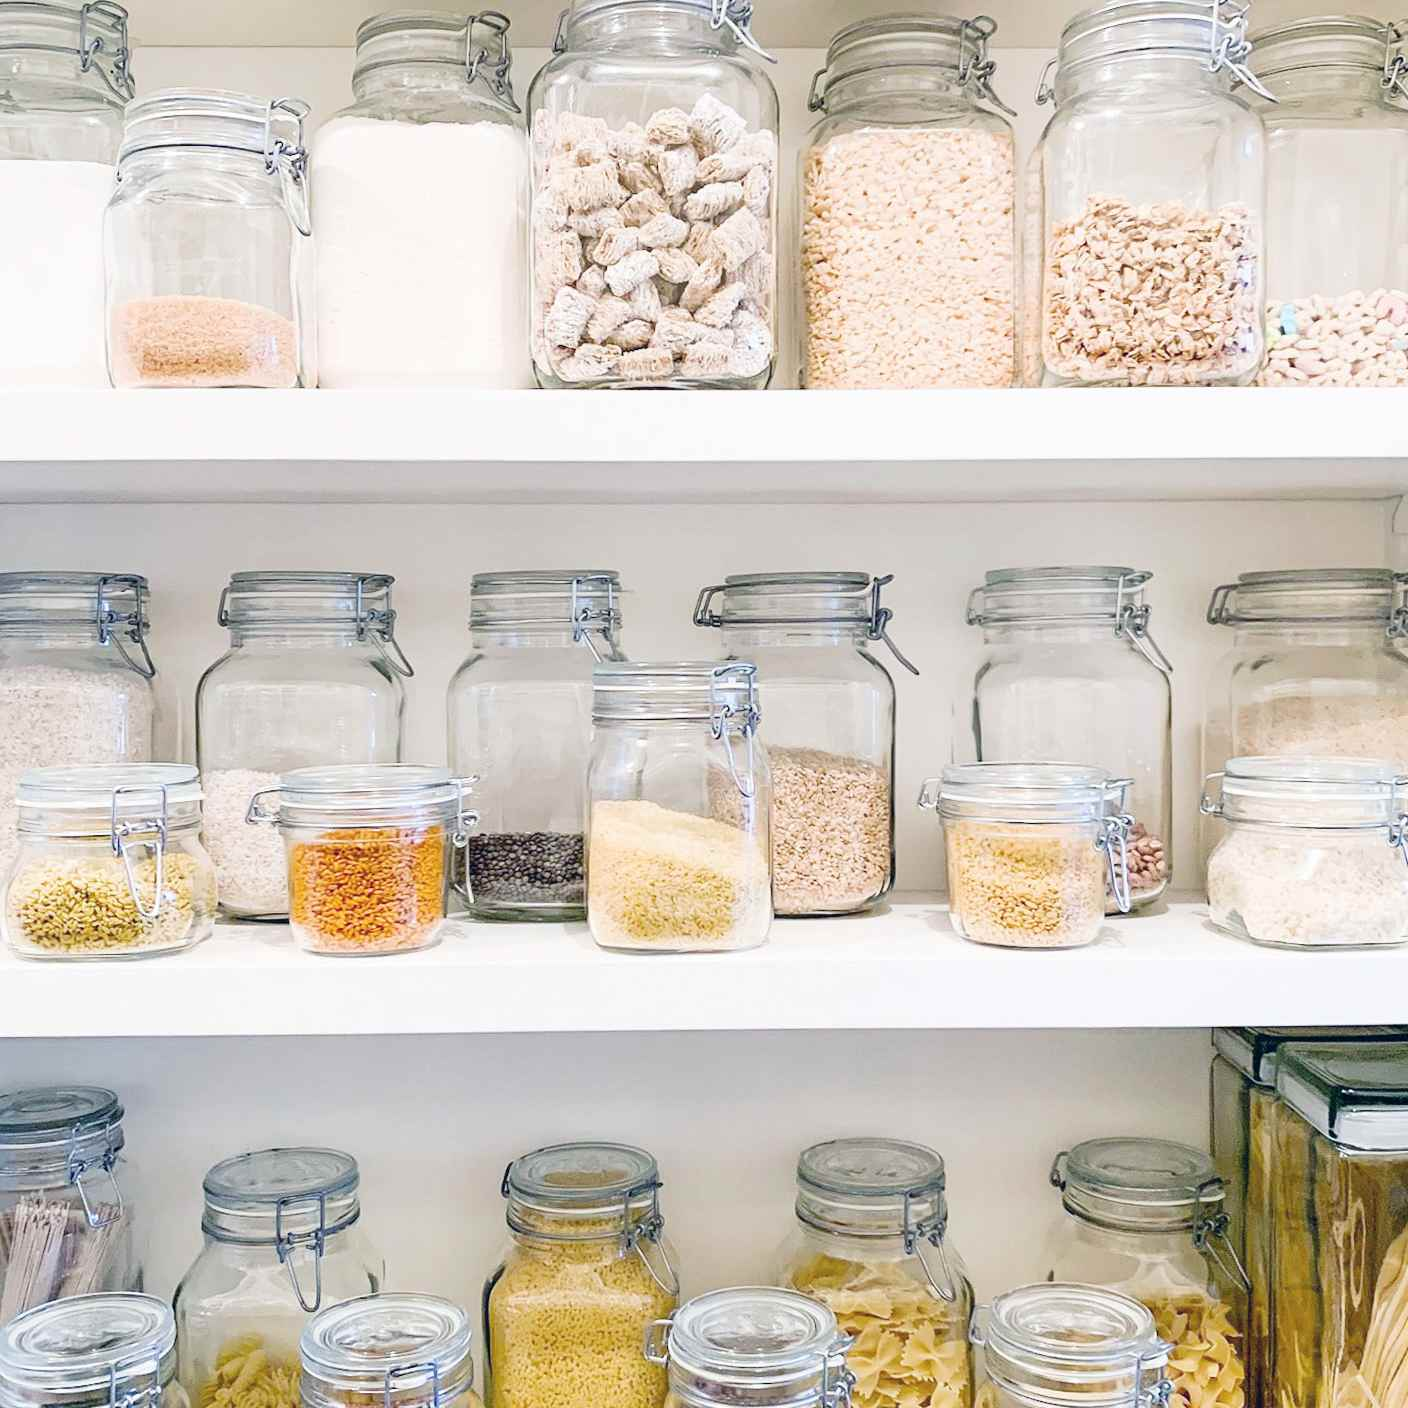 small kitchen storage ideas ikea gallery | 6 IKEA Pantry Organization Ideas